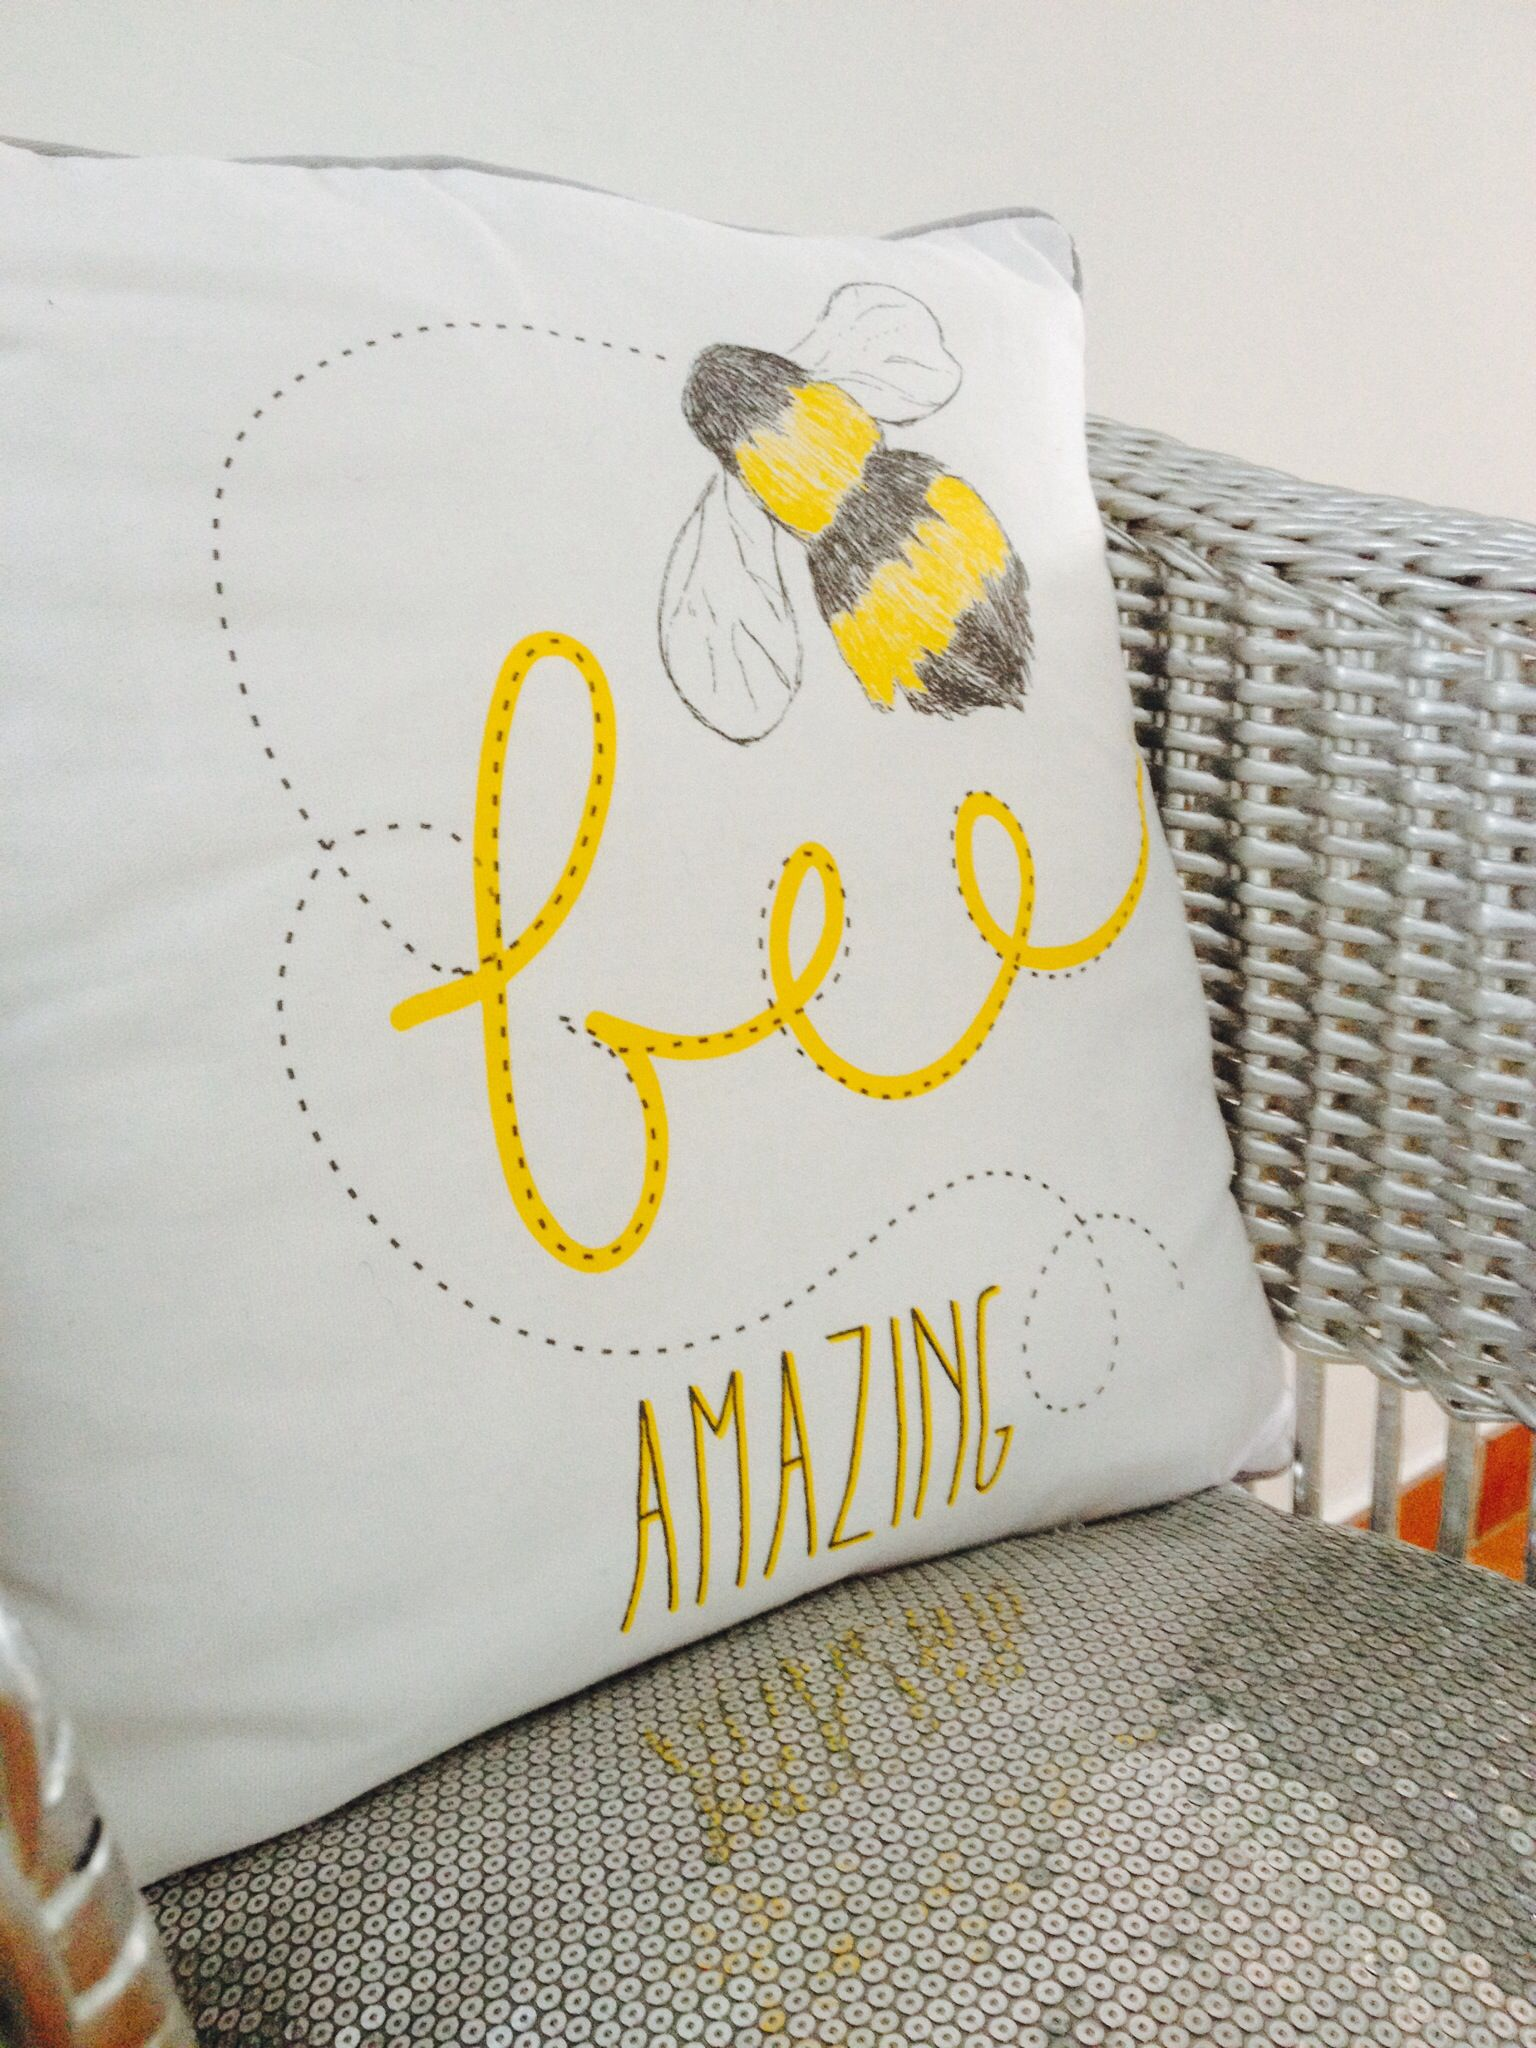 My Bedroom Decor In Grey White And Yellow The Bee Amazing Pillow Is From Primark And The Sequin Silver Pillow From Leroy Silver Pillows Pillows Throw Pillows